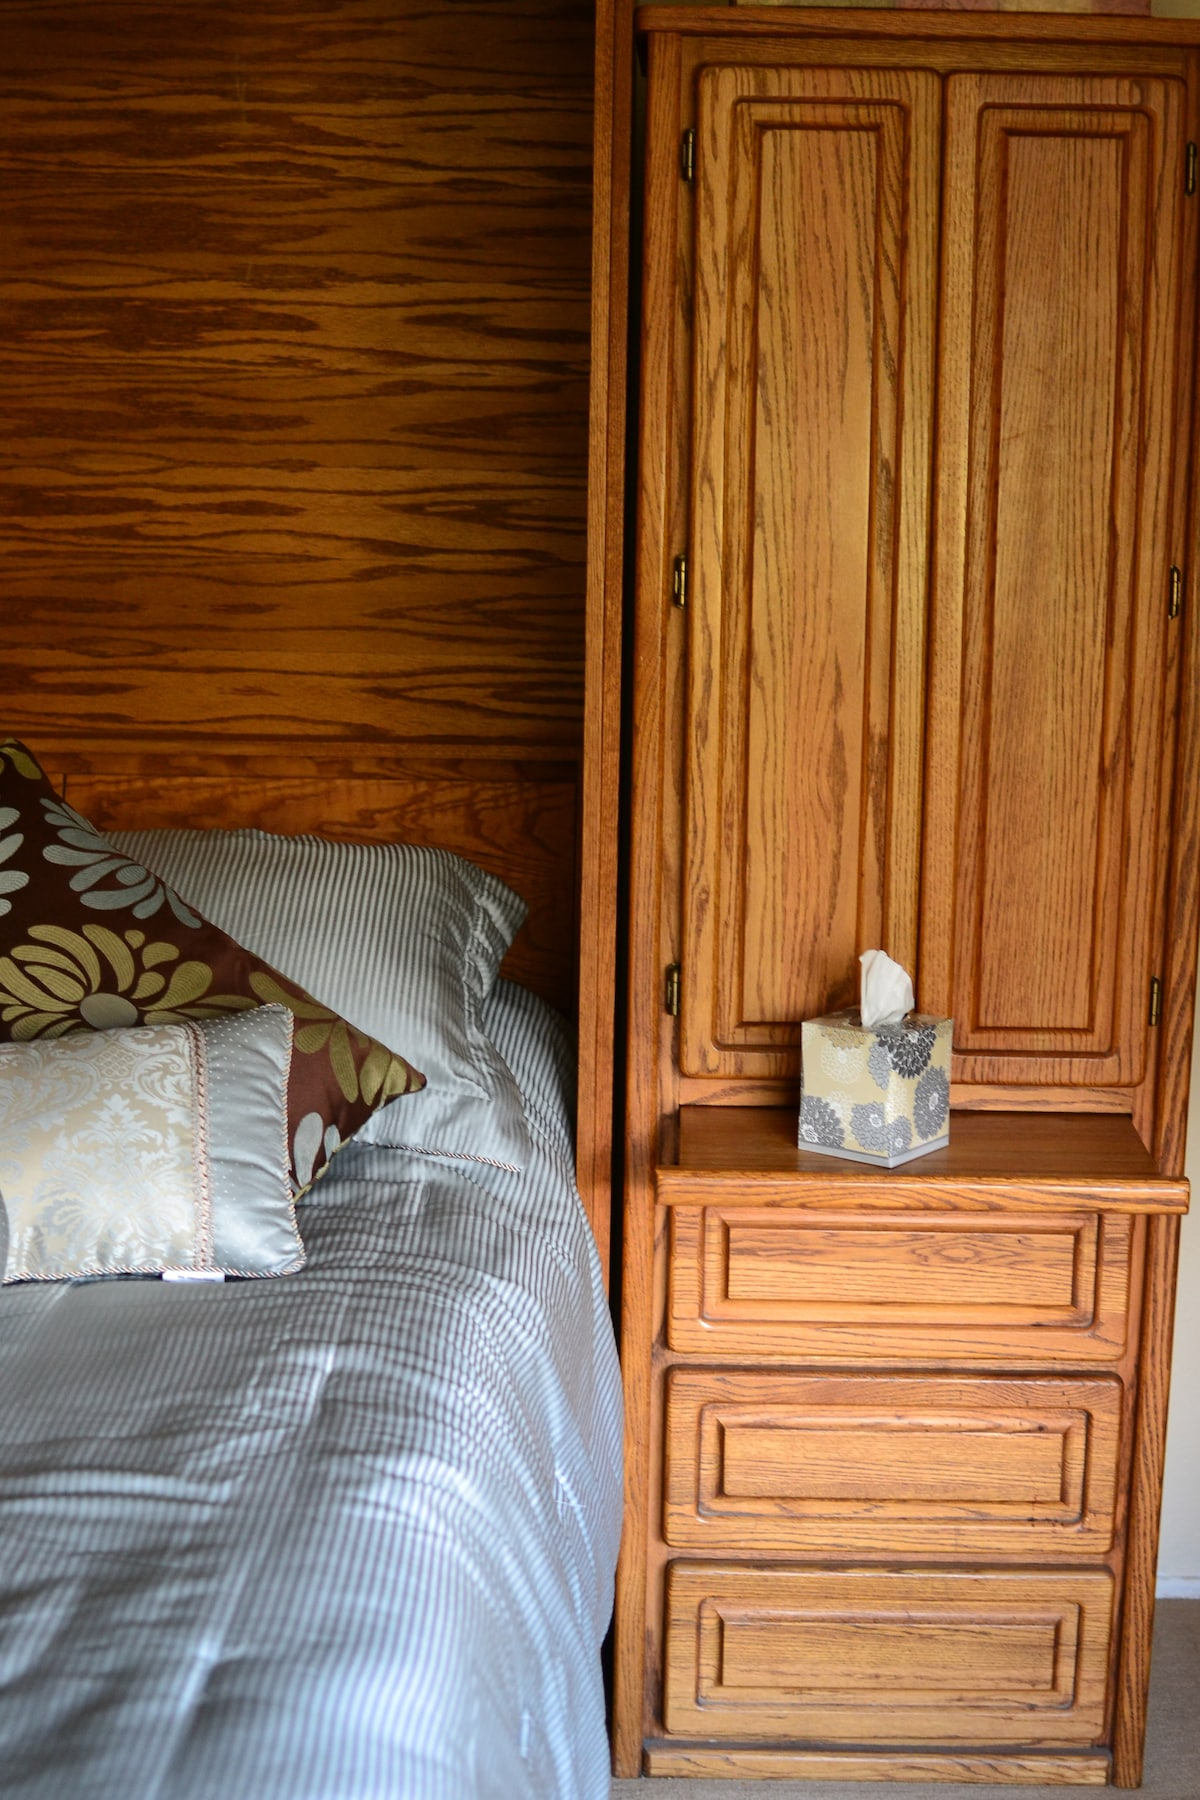 Drawers and shelves available to store belongings and pull-out night stands